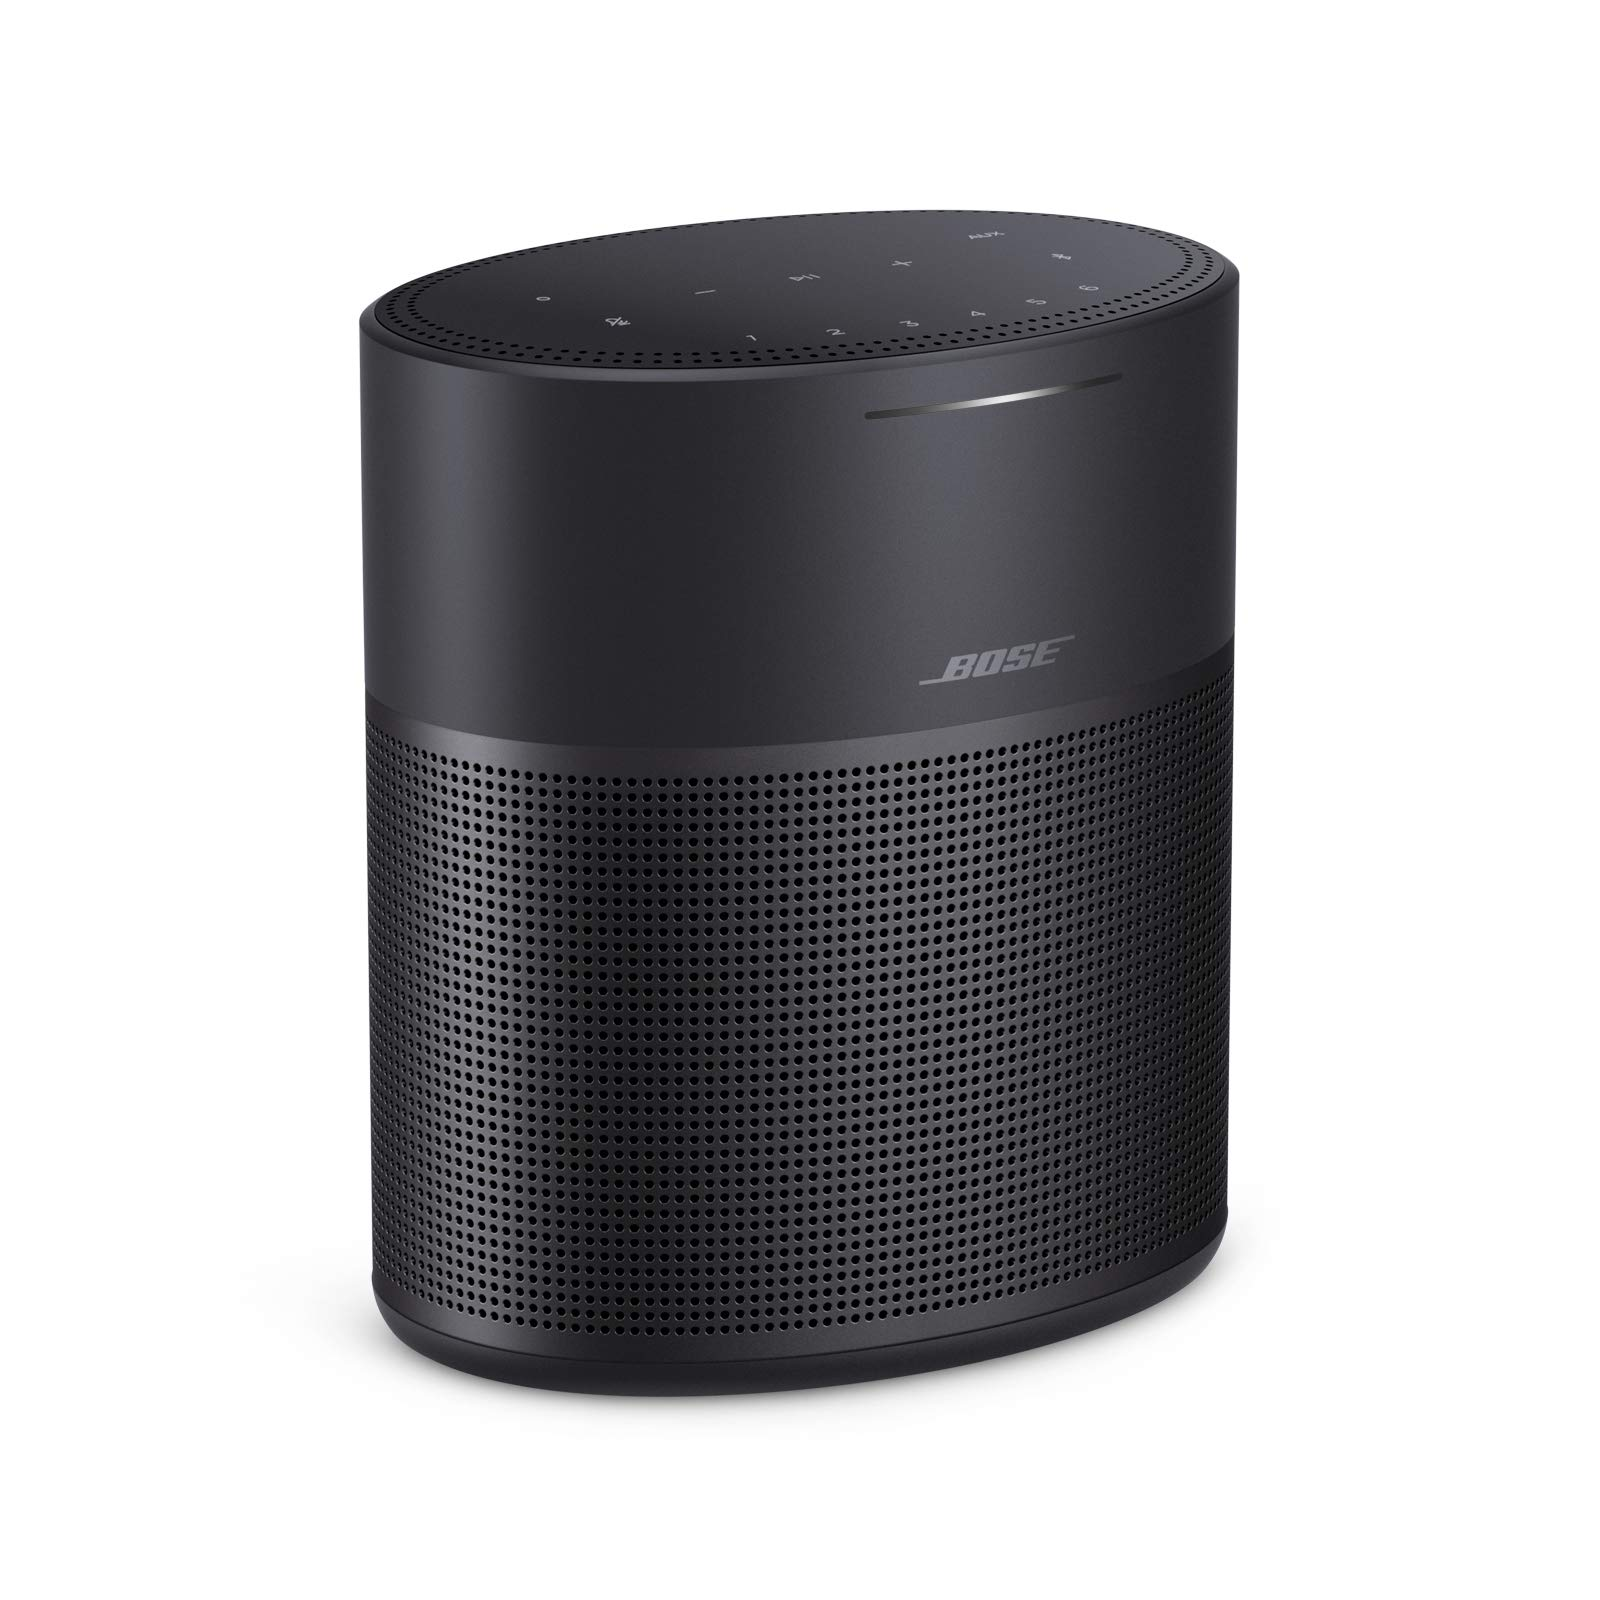 보스 홈 스피커 300 위드 알렉사 Bose Home Speaker 300, with Amazon Alexa Built-in